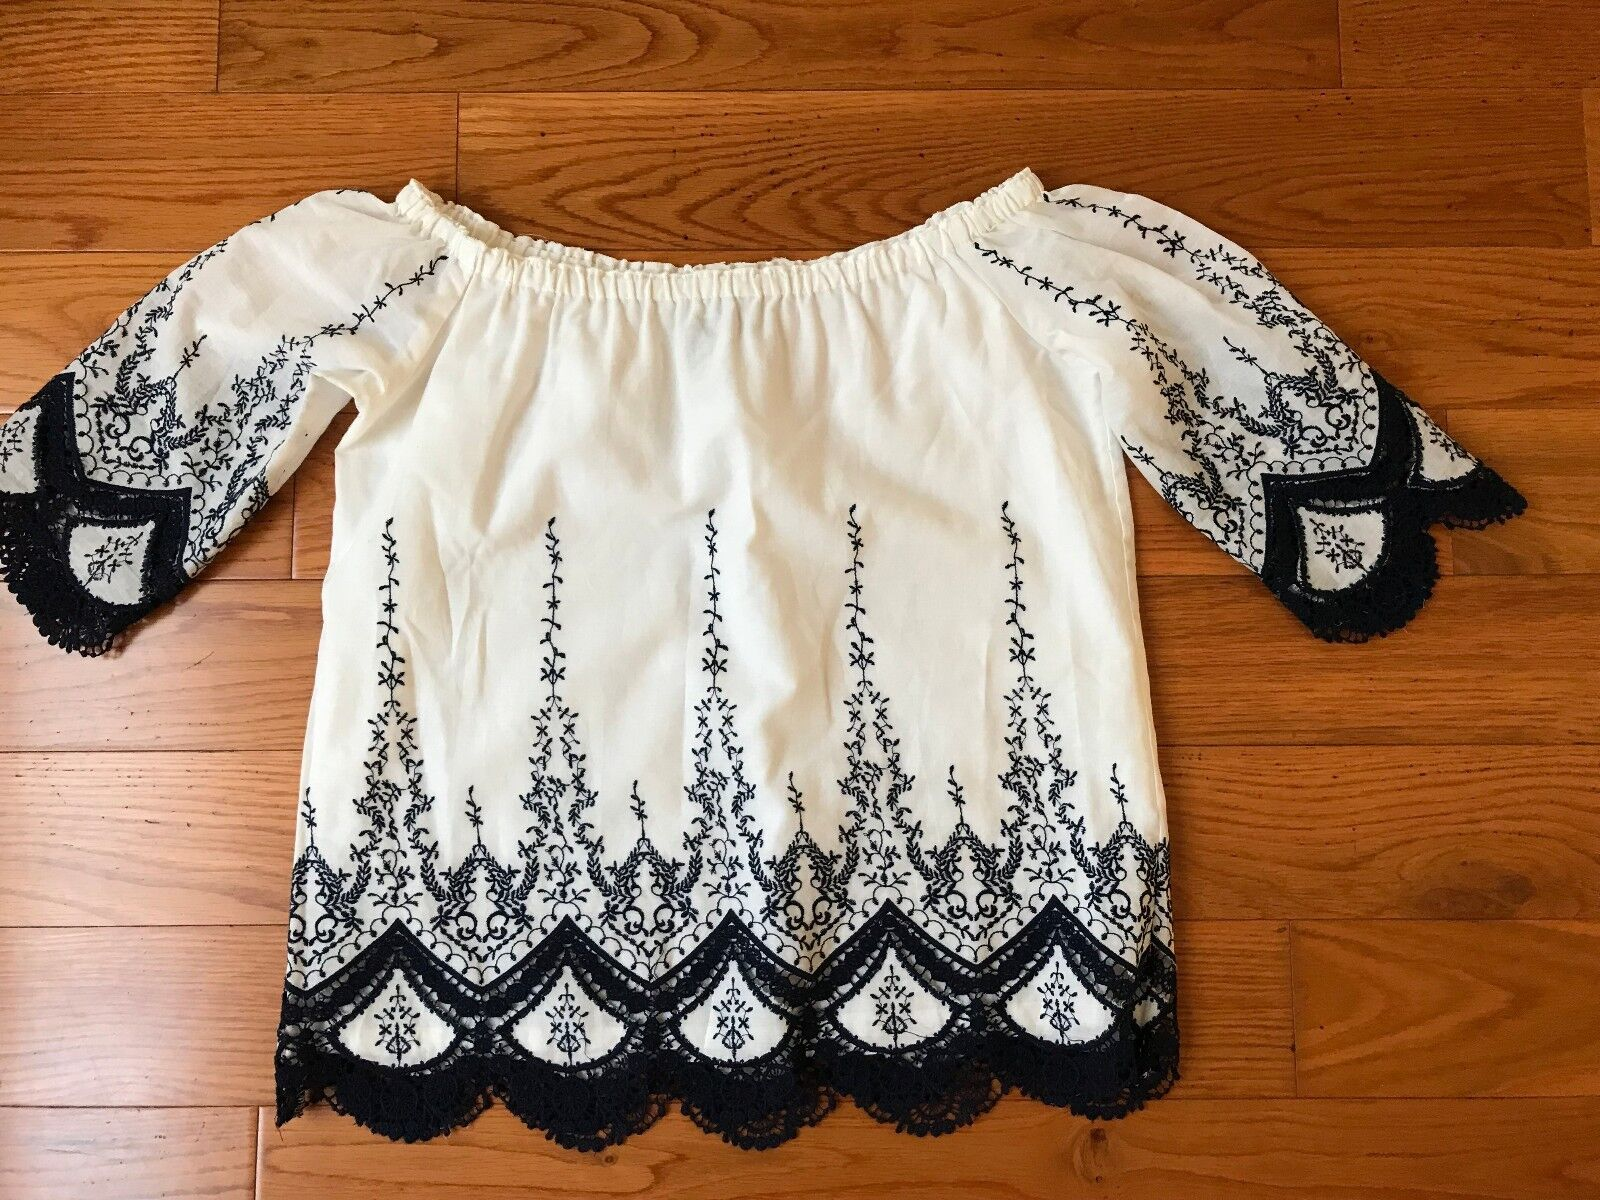 NWOT Anthropologie DREW blouse top with floral embroiderot SP fits 4-6 S USA